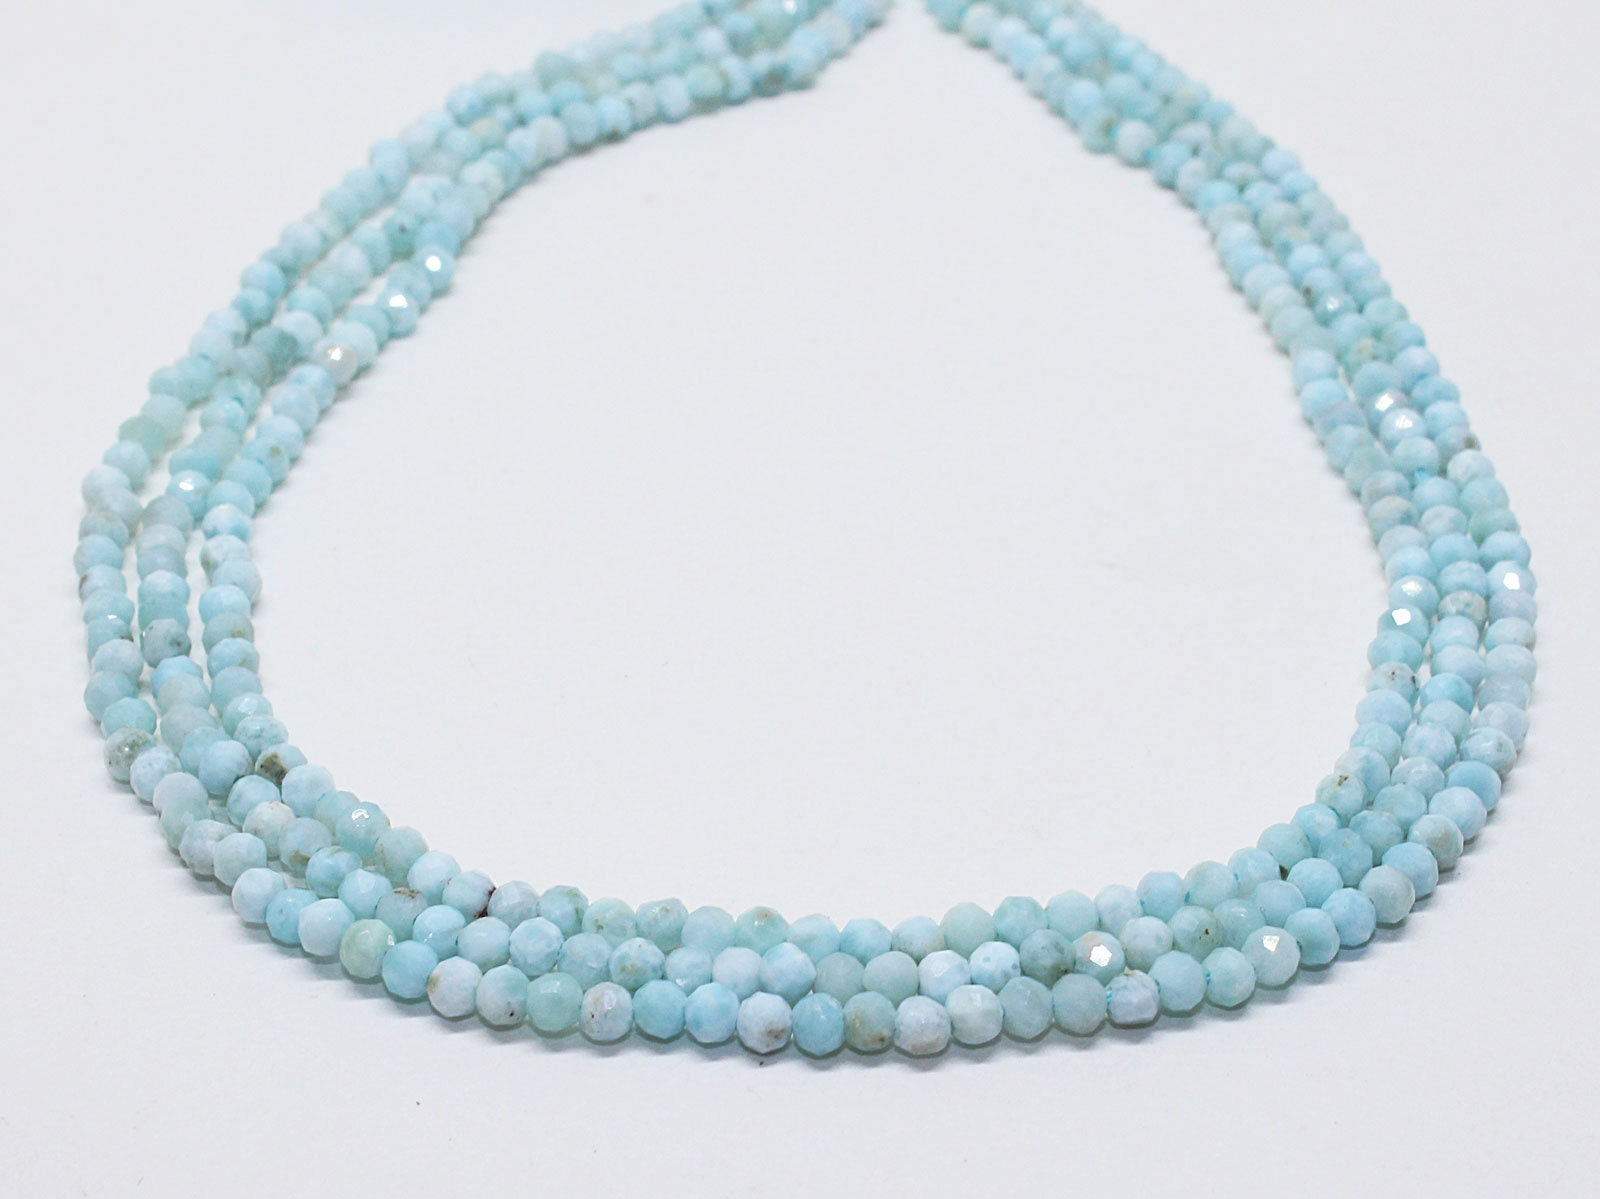 Turquoise faceted round strand 16 turquoise line for jewelry making 2.5 mm turquoise beads